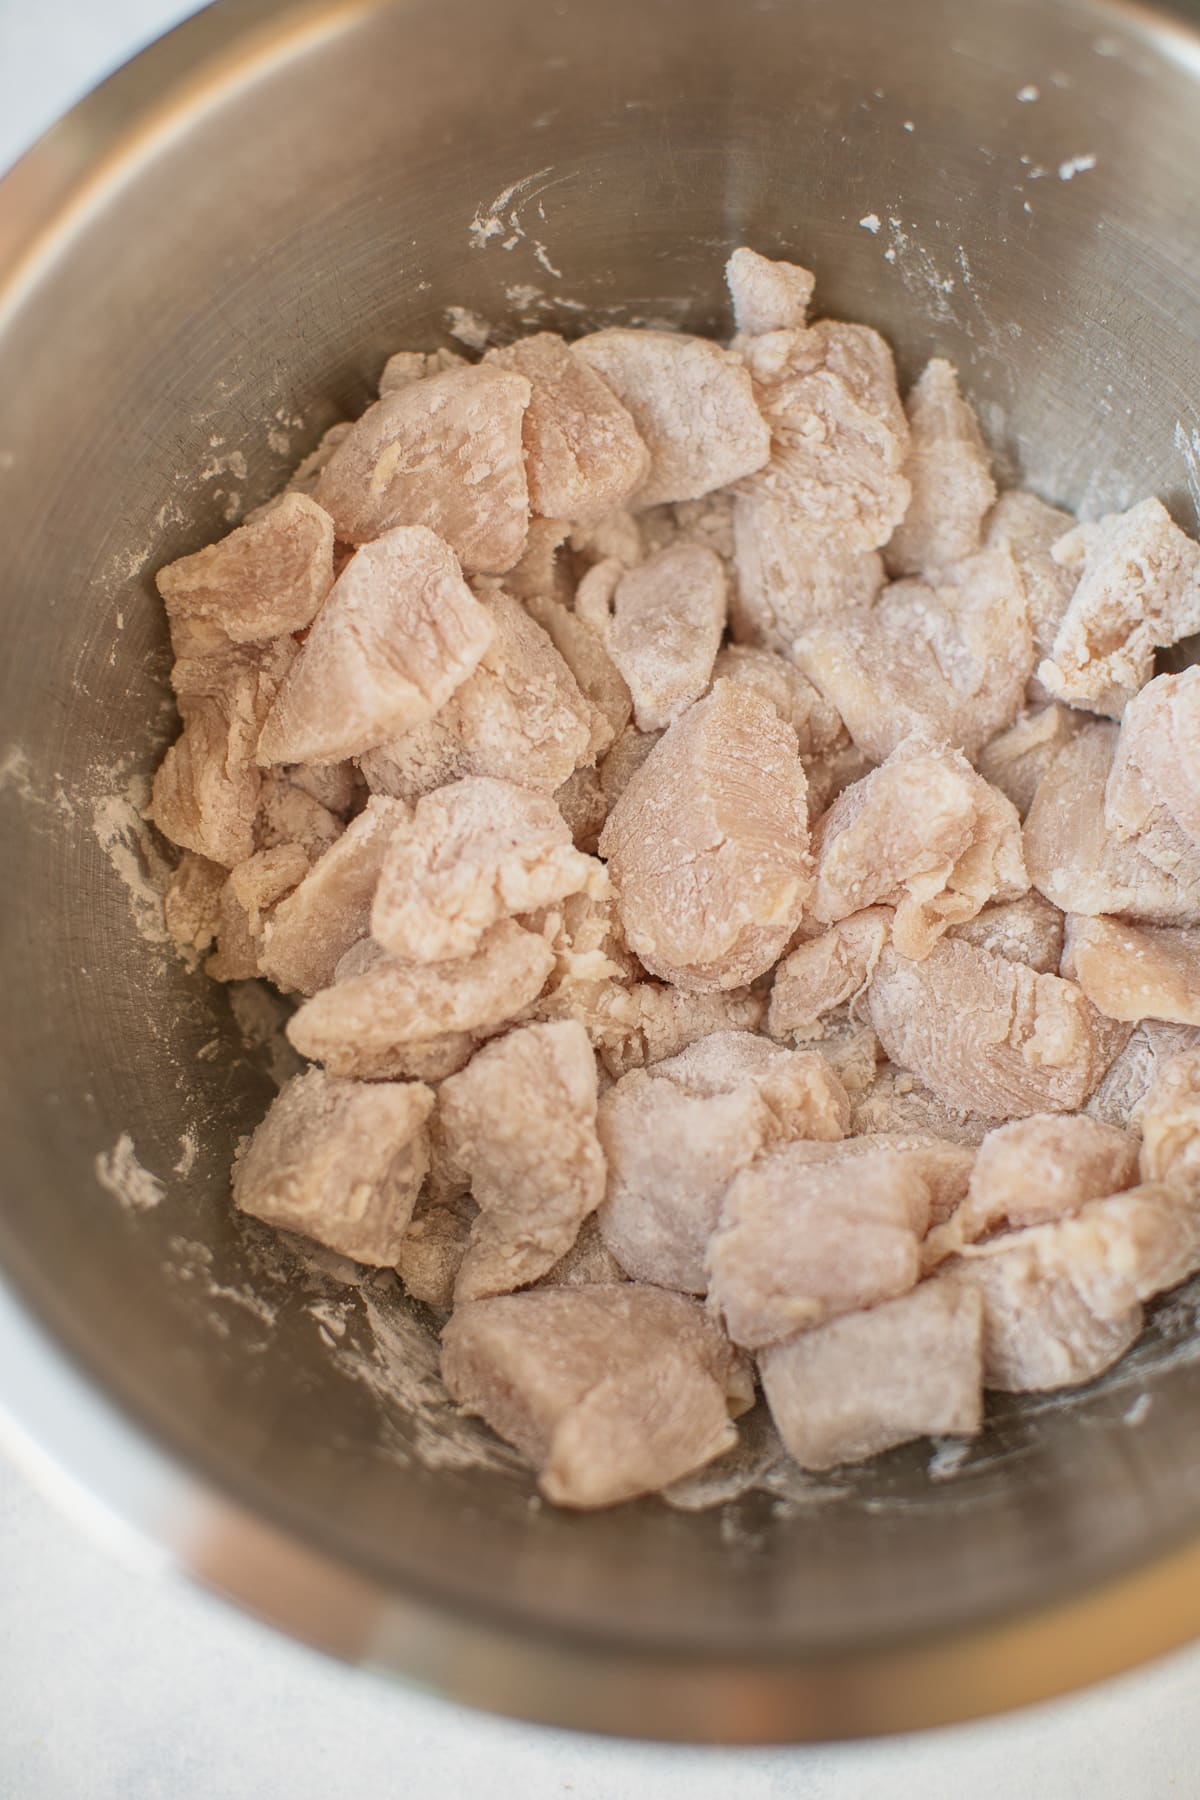 chicken and starch in a mixing bowl